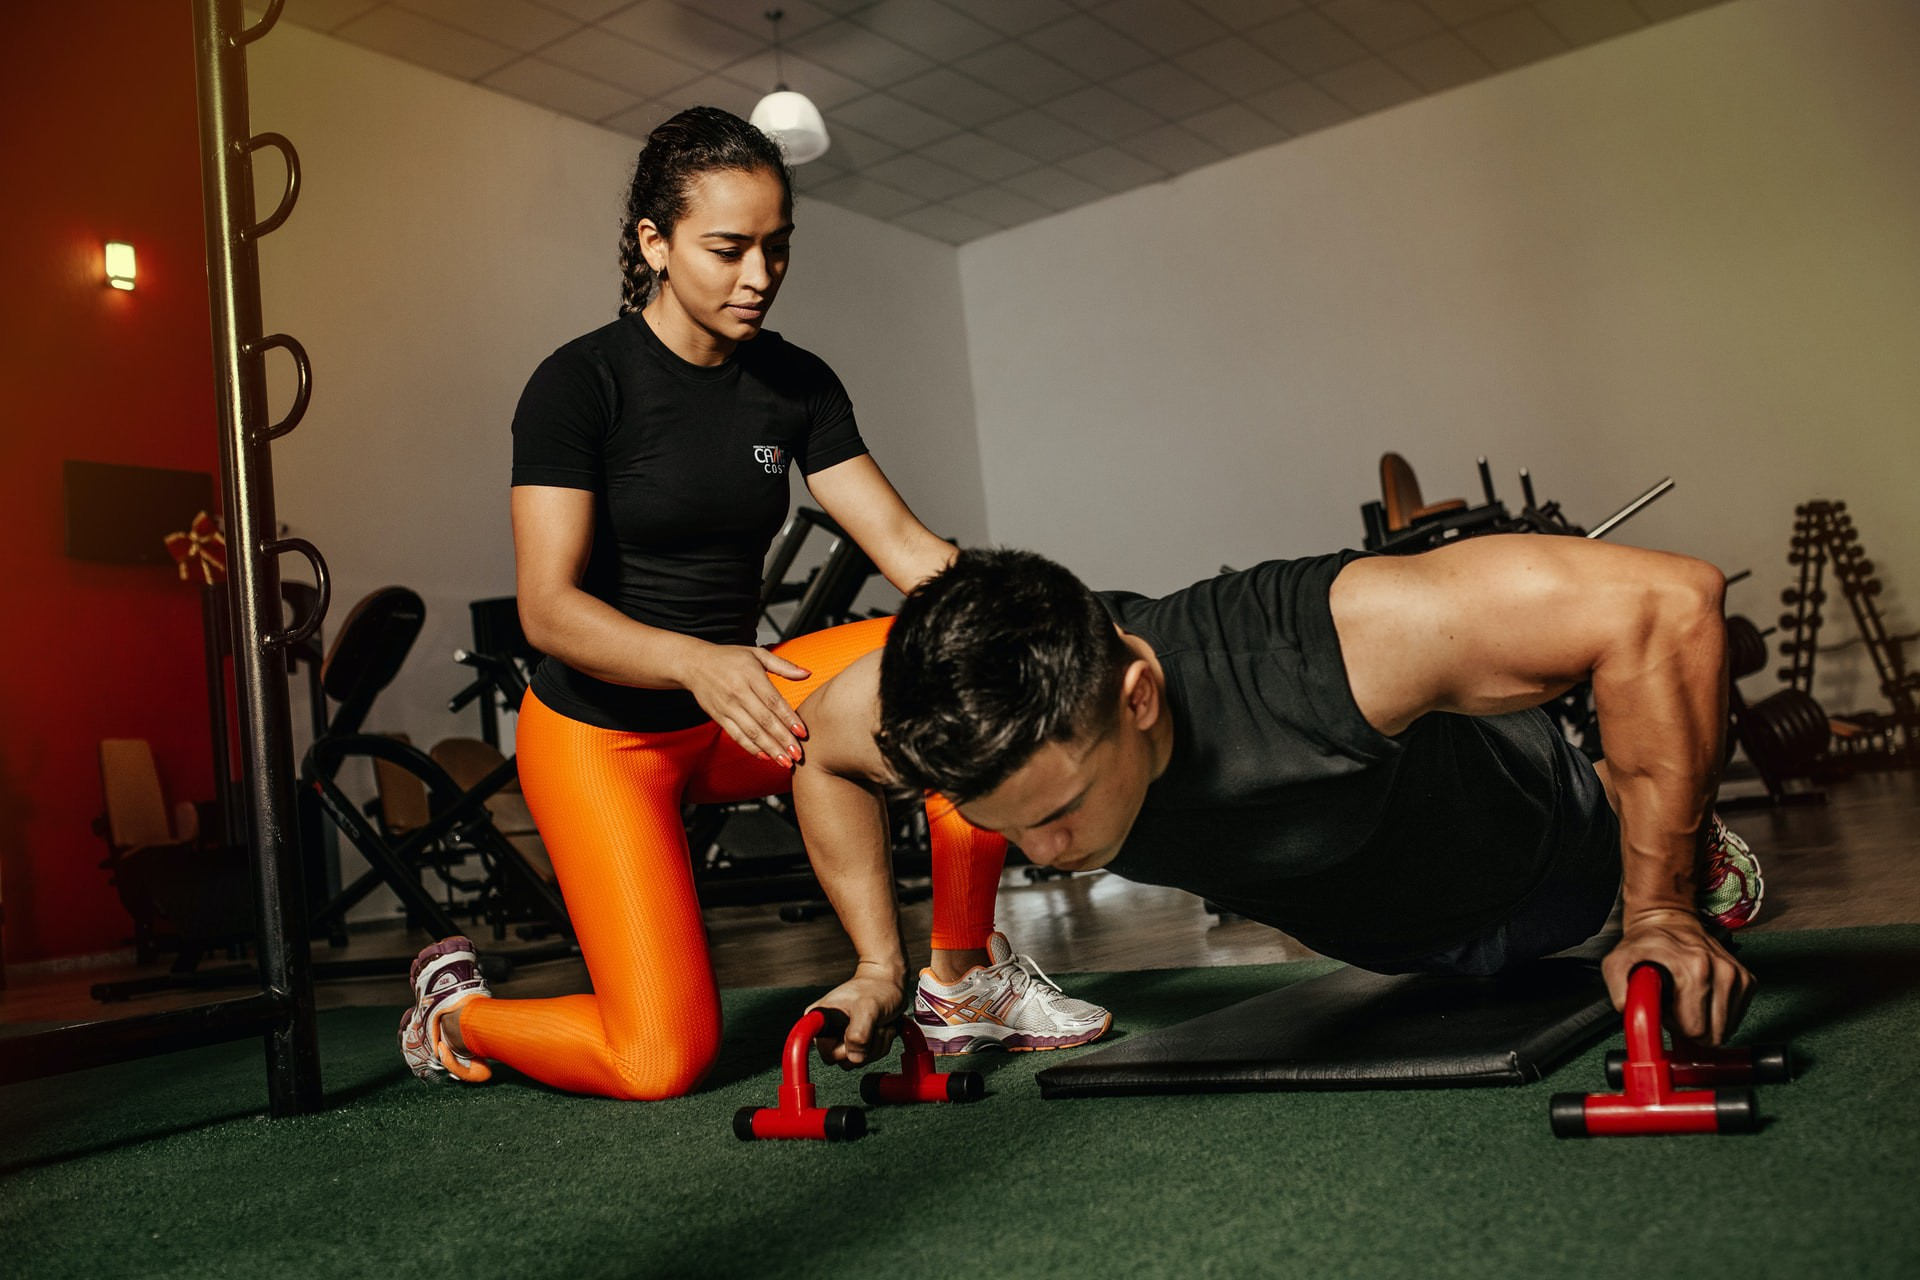 Taking Your Health and Fitness Business Further